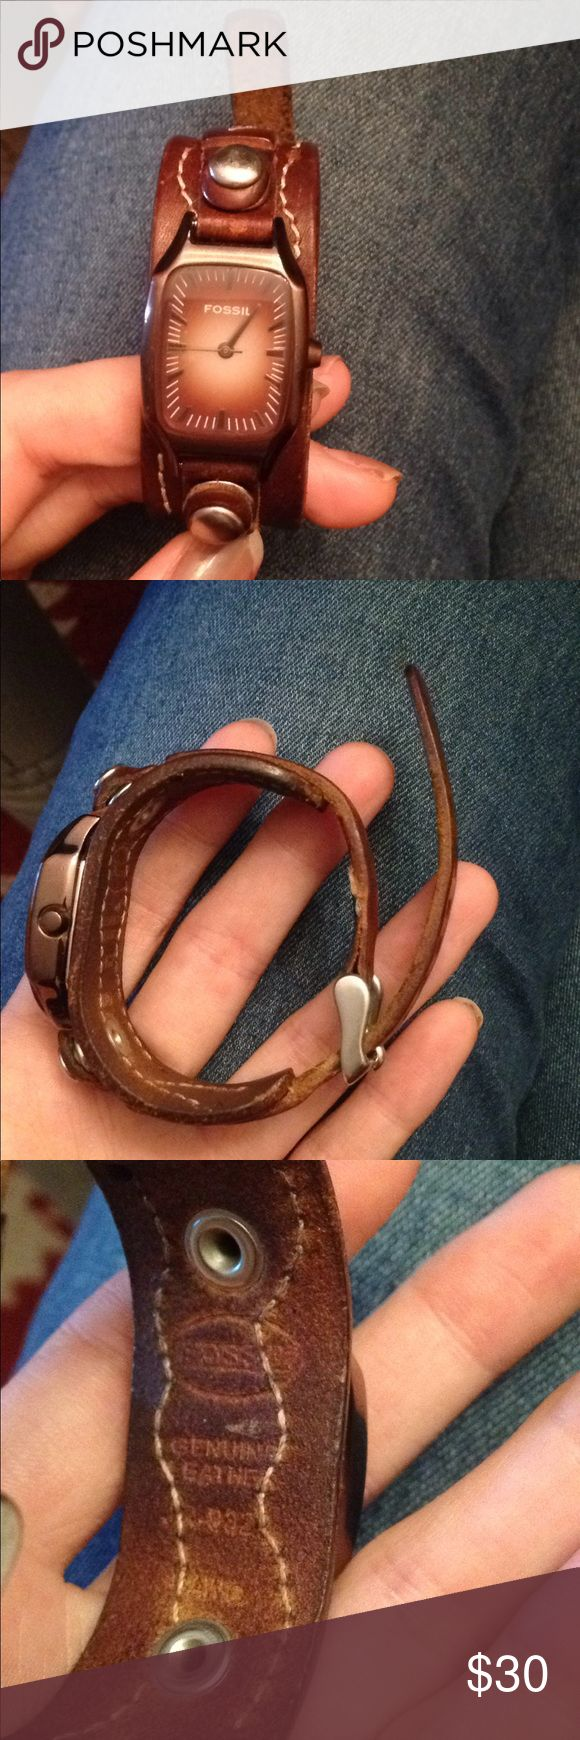 Brown leather fossil watch. Brown leather fossil watch. Just had the battery replaced today. The only issue is the strap is missing the thin leather strap that holds the long strap down. Fossil Accessories Watches